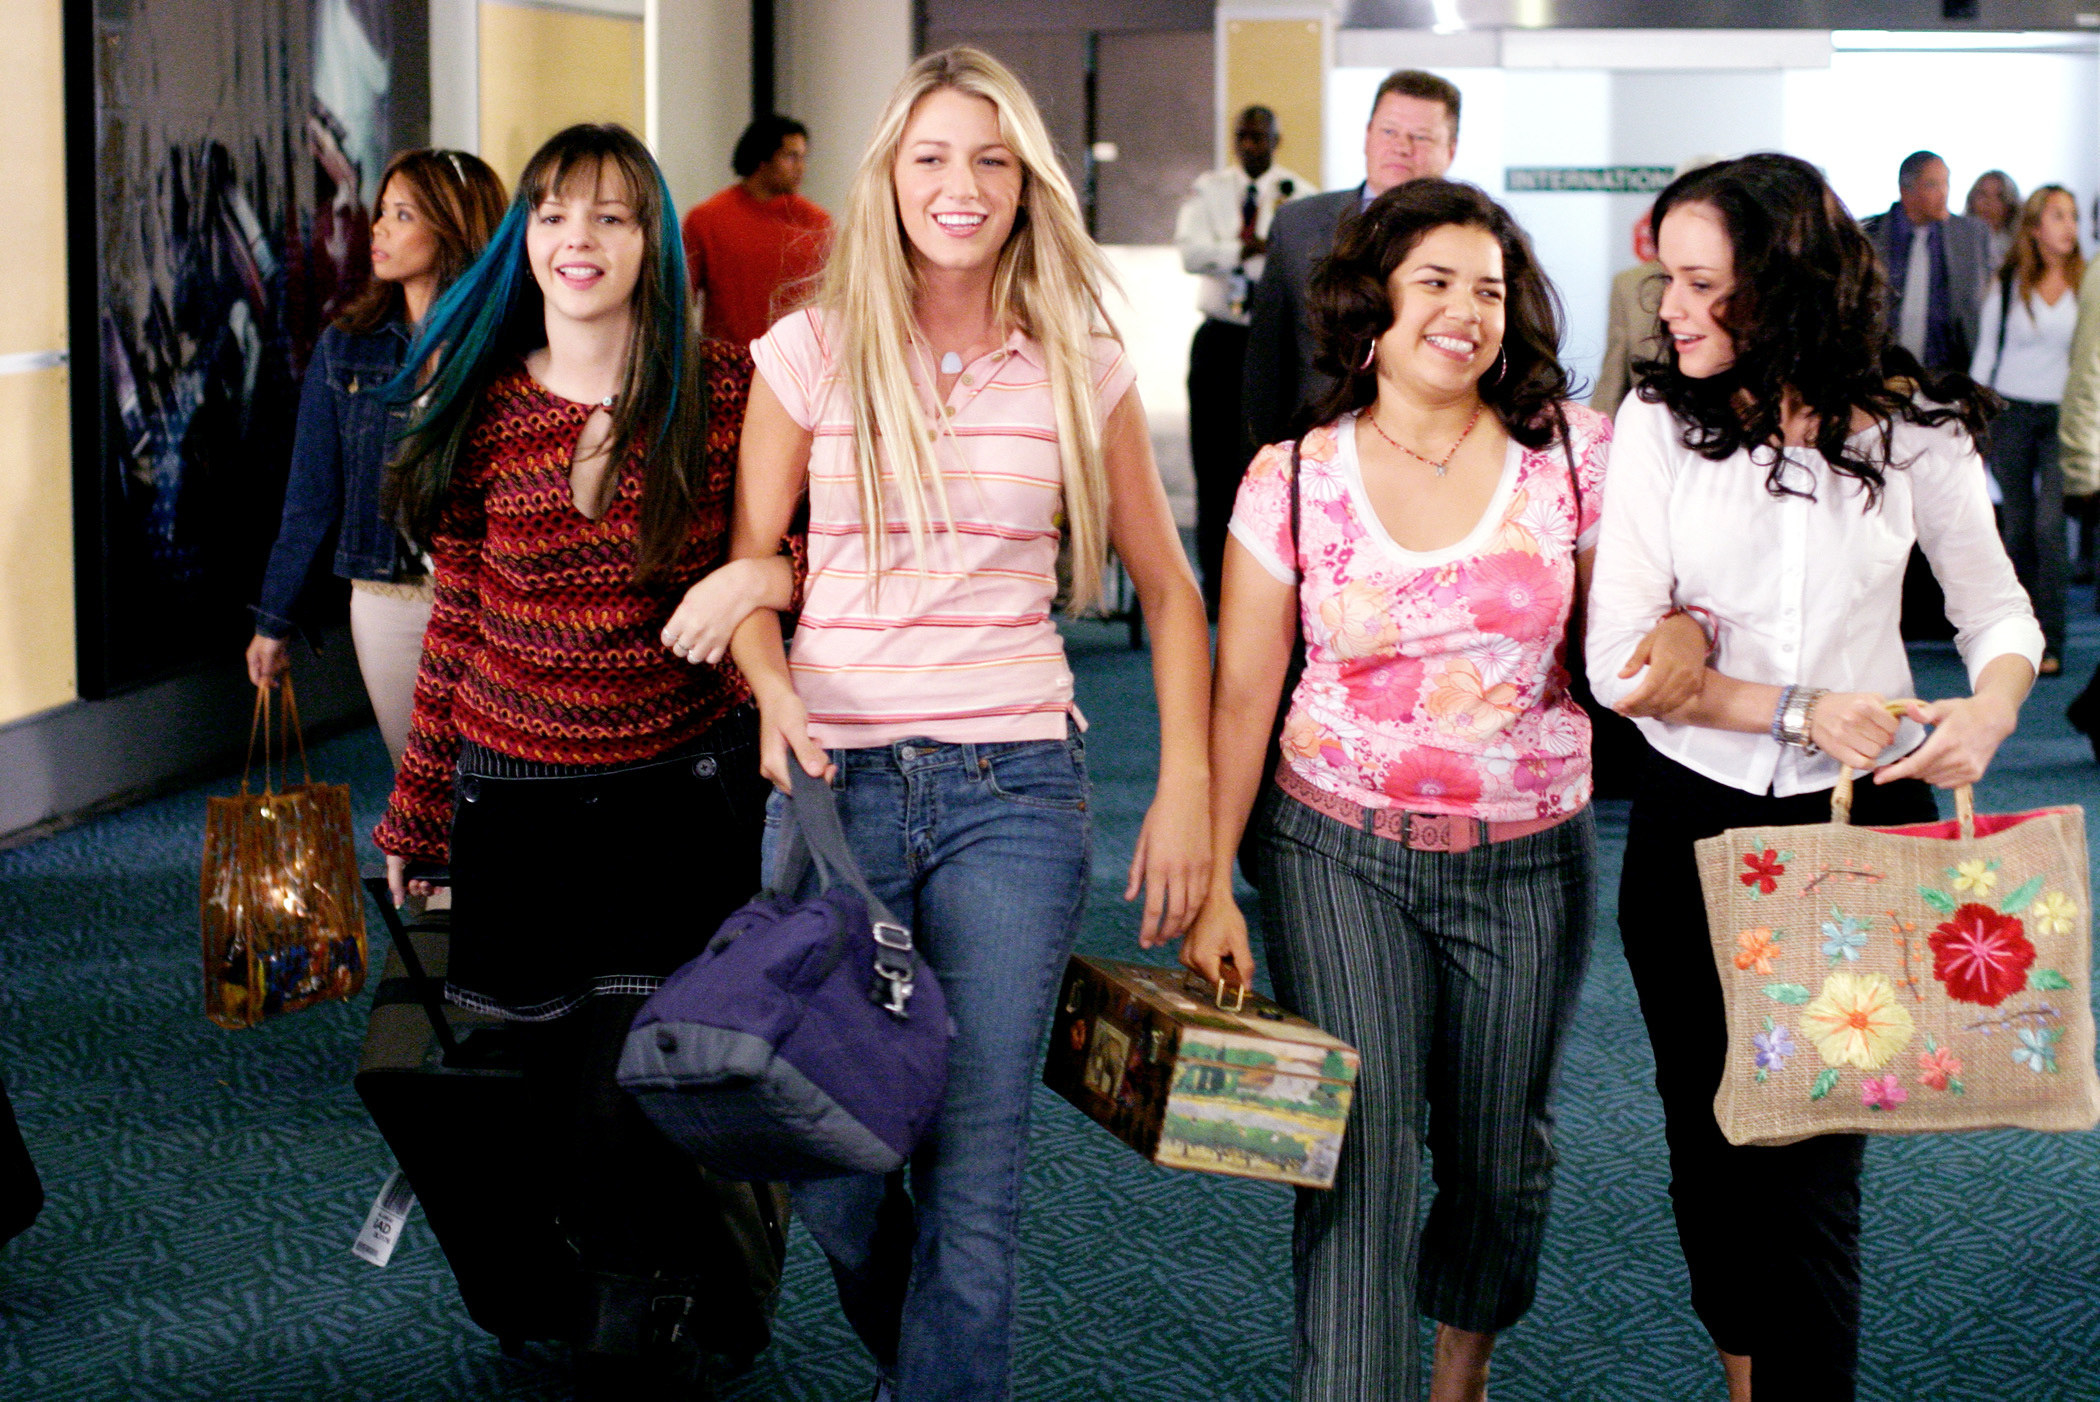 Amber Tamblyn, Blake Lively, America Ferrera, and Alexis Bledel in The Sisterhood of the Traveling Pants